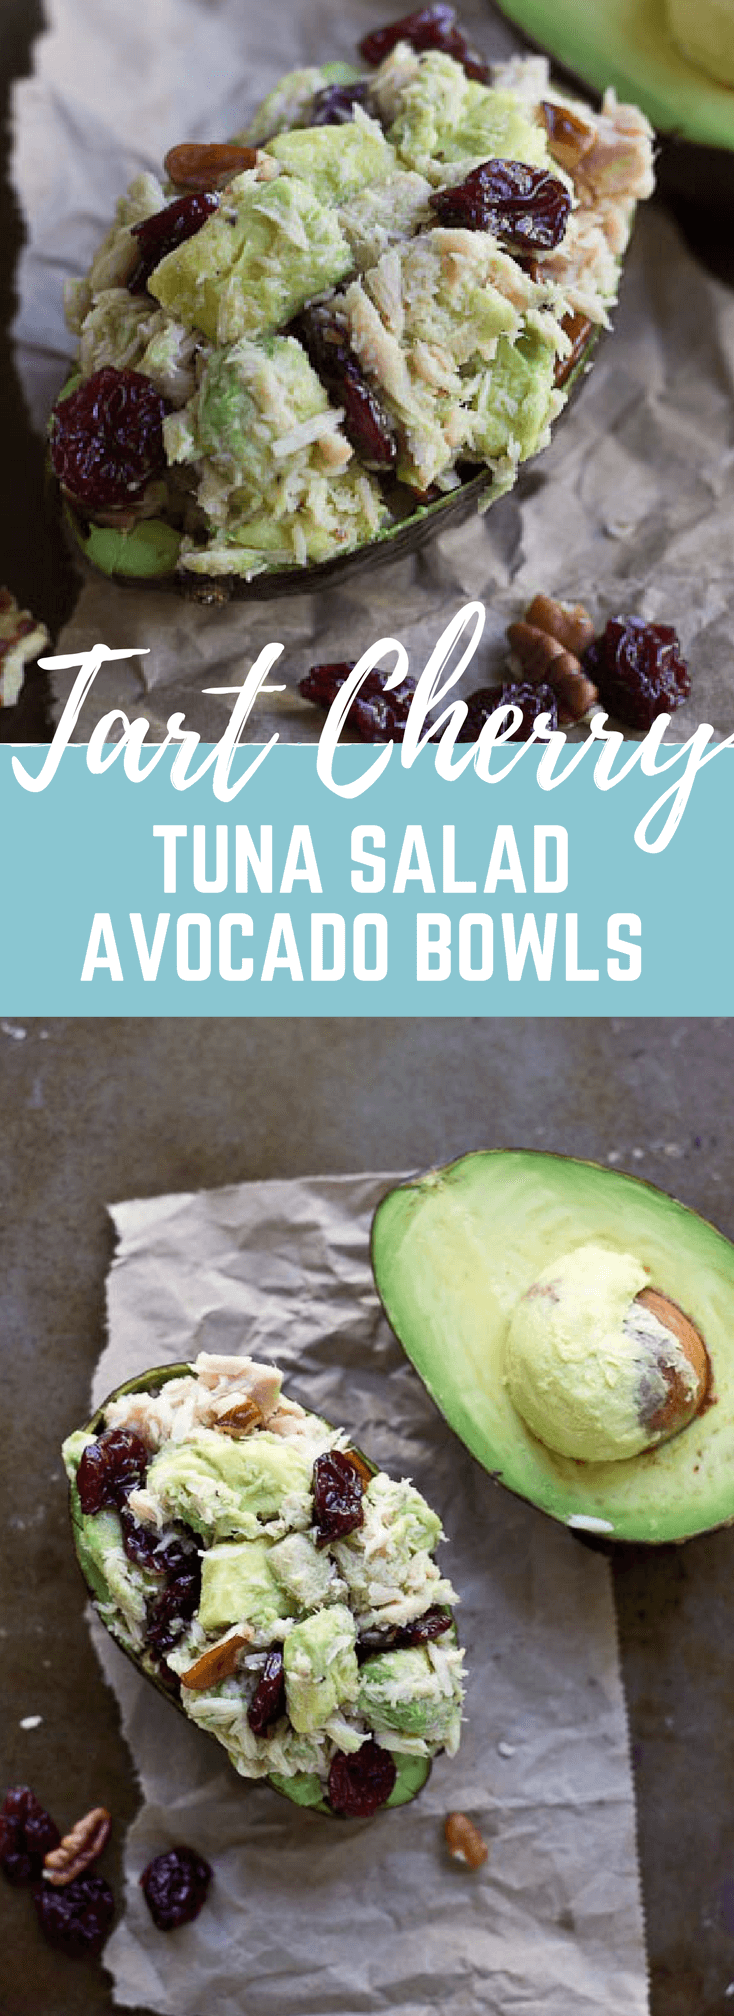 Tart Cherry Tuna Salad Avocado Bowls- A simple and healthy lunch option!